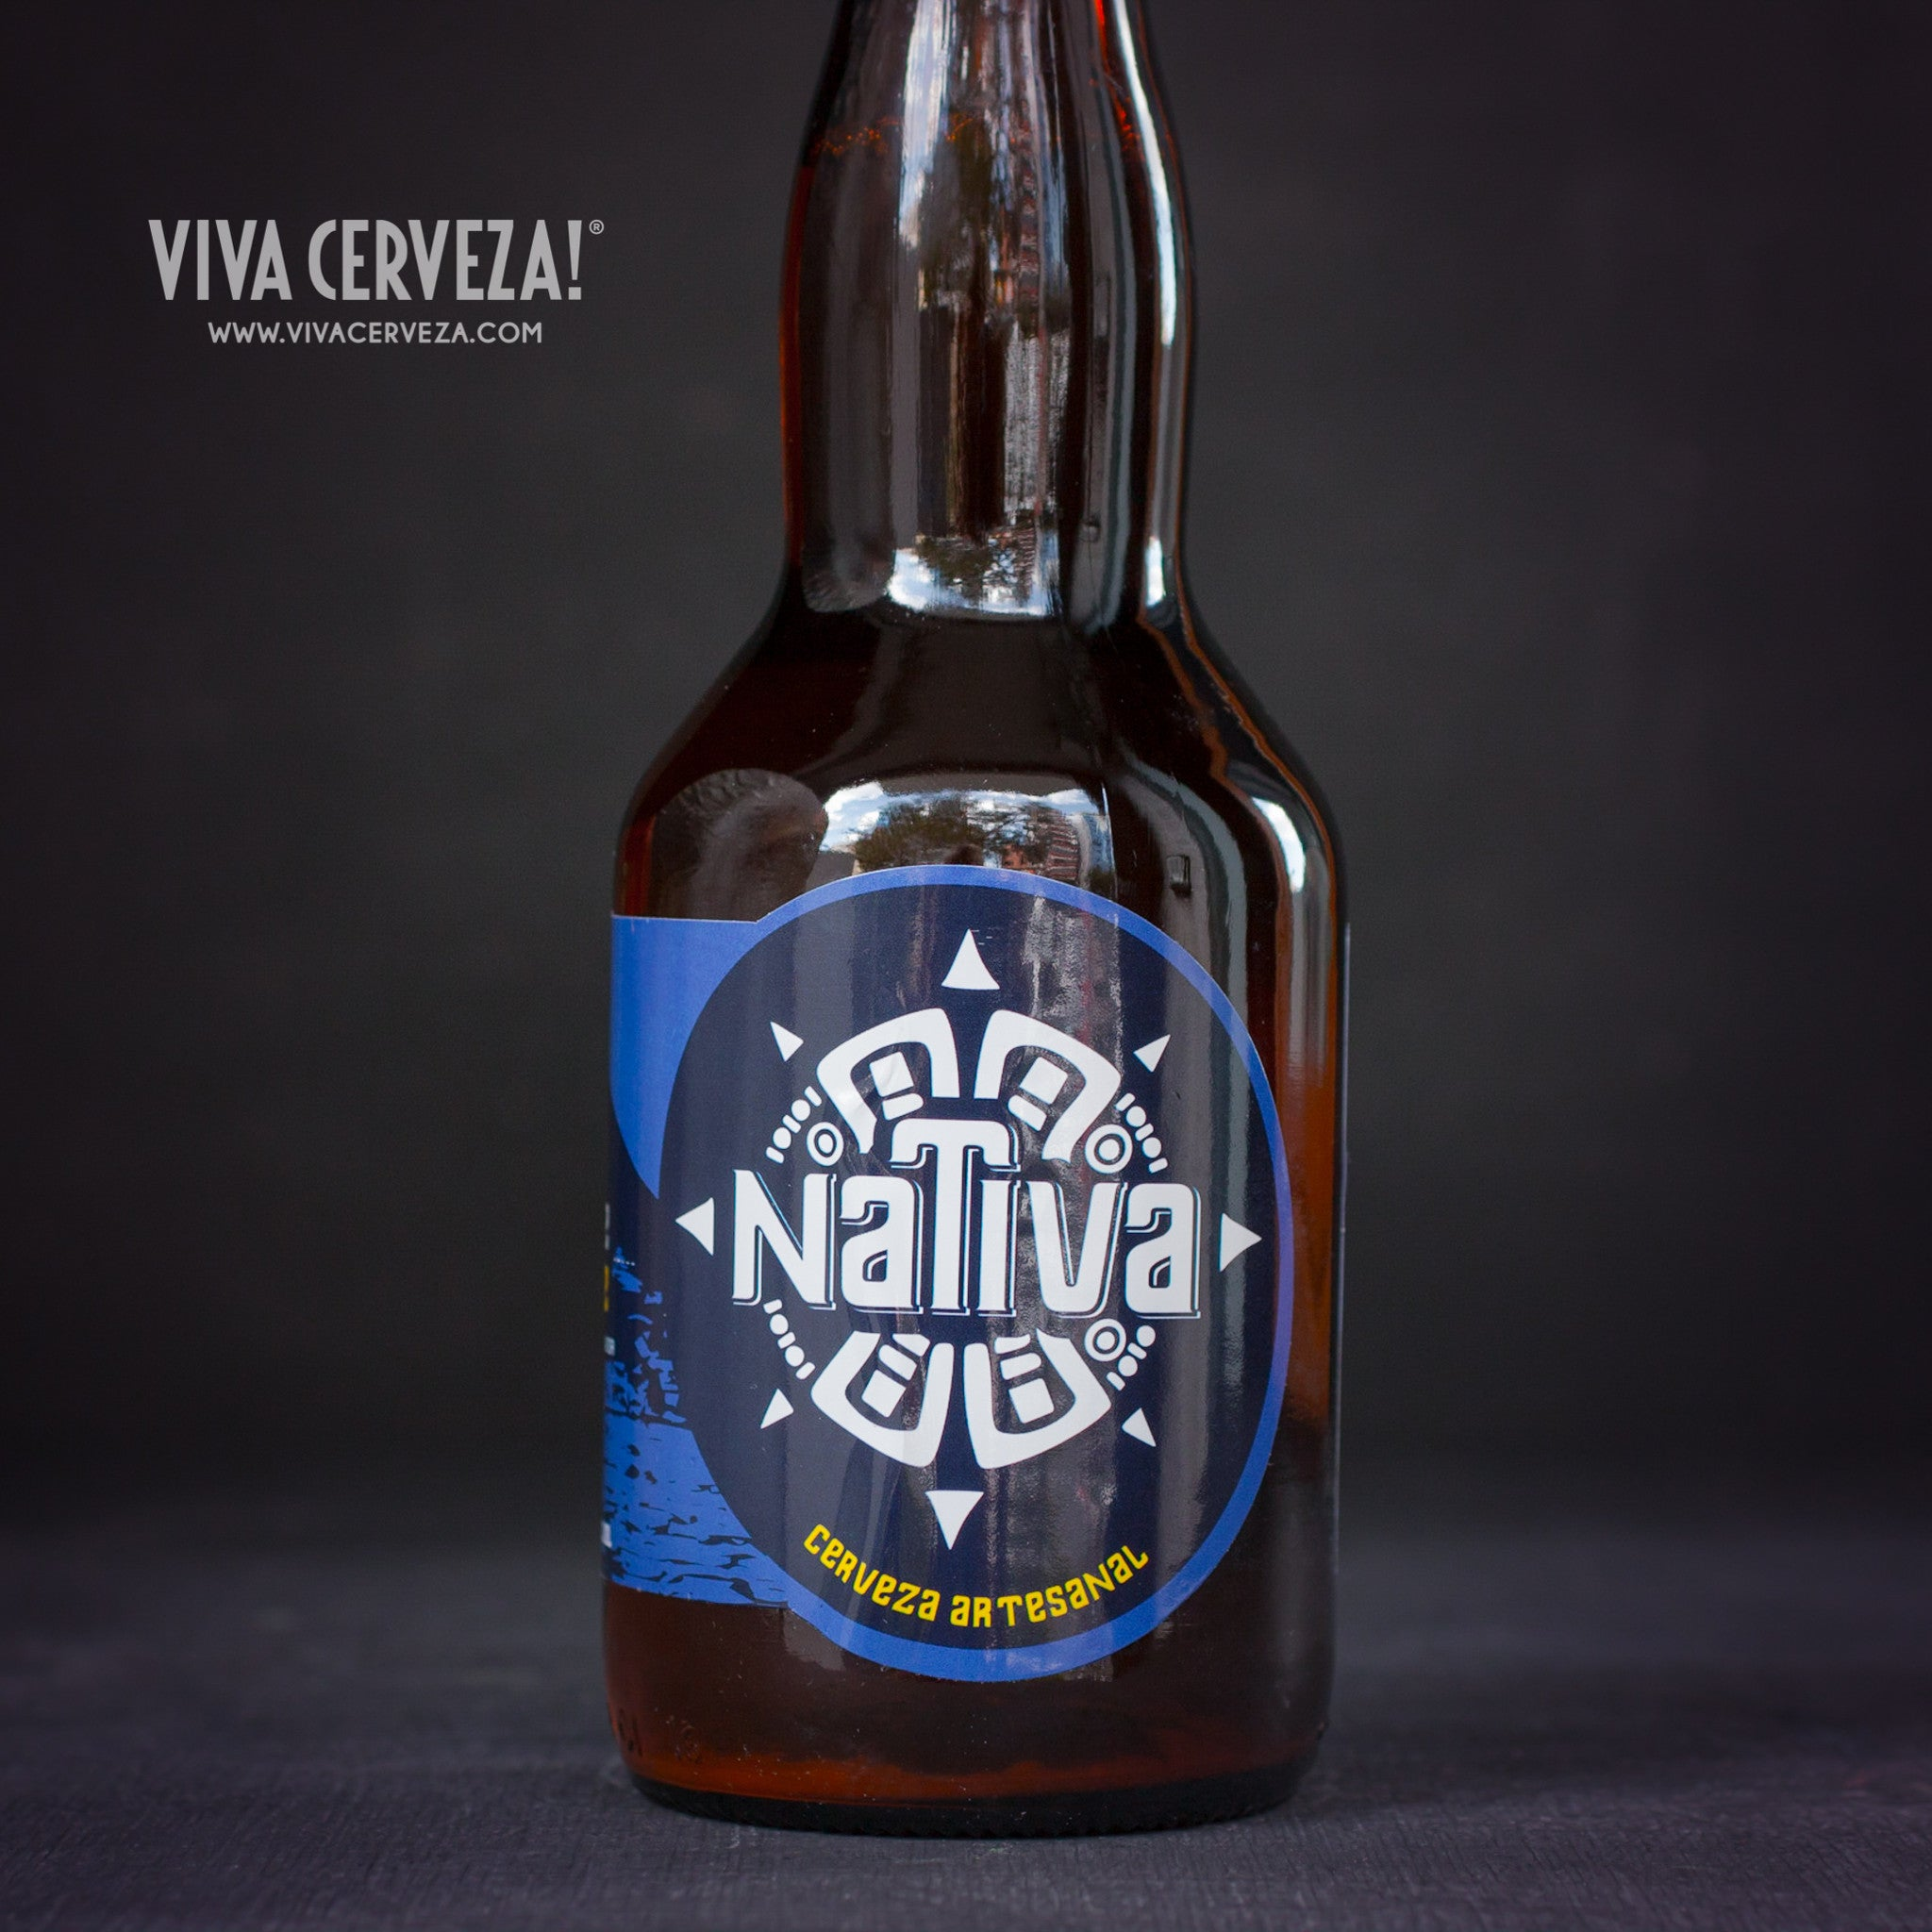 Nativa San Pablo - 330ml Botella Cerveza Artesanal Craft Beer Ecuador - %